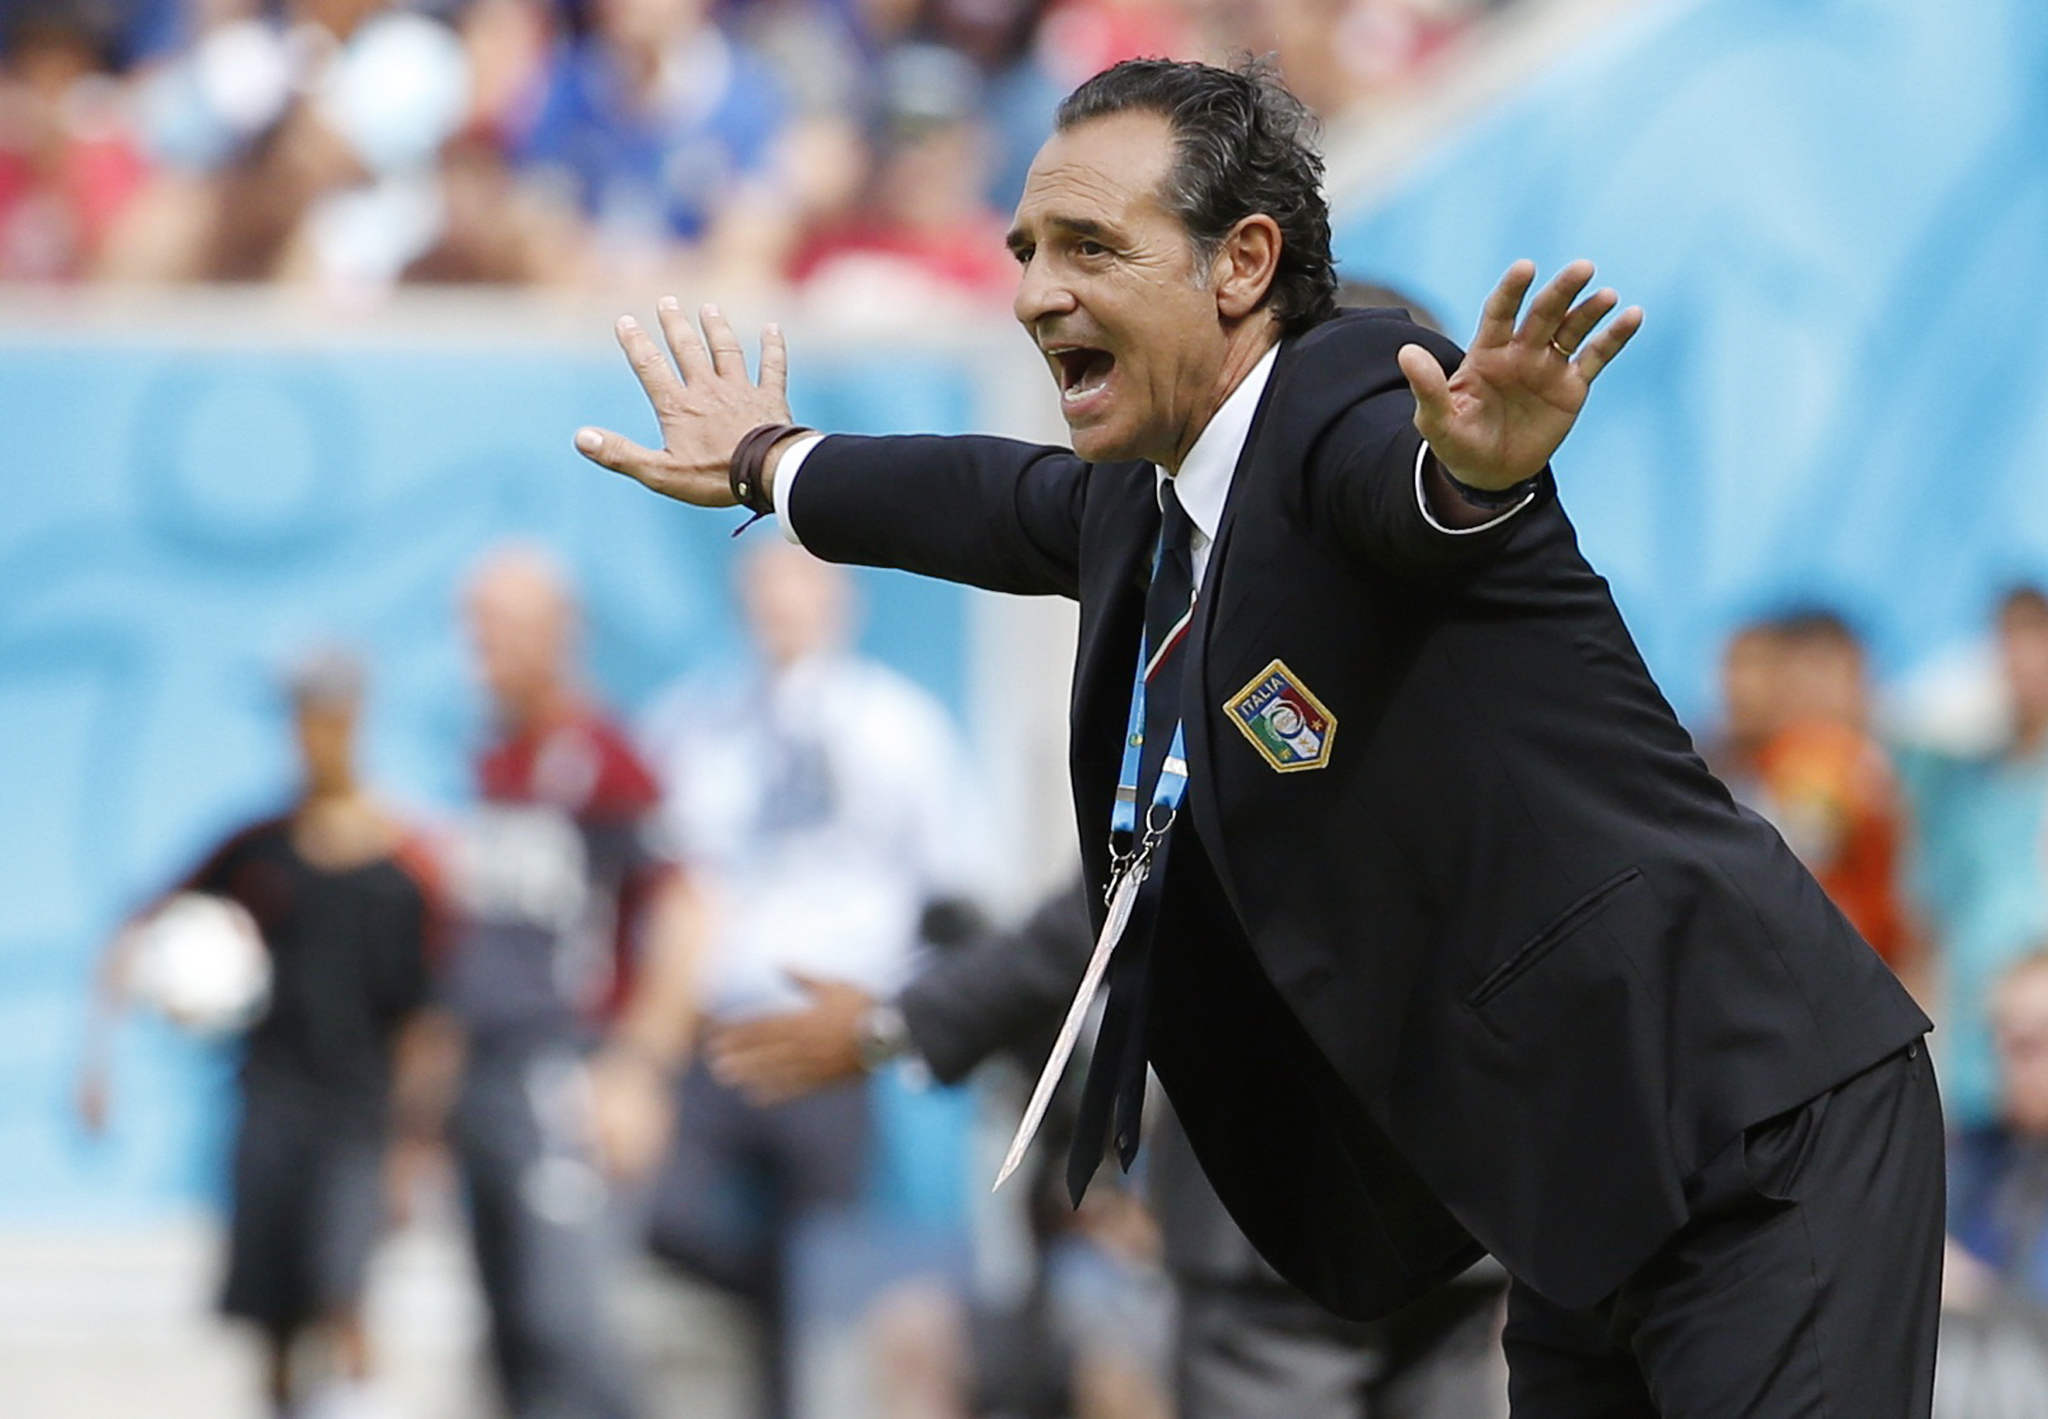 Italy's coach Cesare Prandelli shouts during the 2014 World Cup Group D soccer match between Italy and Costa Rica at the Pernambuco arena...Italy's coach Cesare Prandelli shouts during the 2014 World Cup Group D soccer match between Italy and Costa Rica at the Pernambuco arena in Recife June 20, 2014.